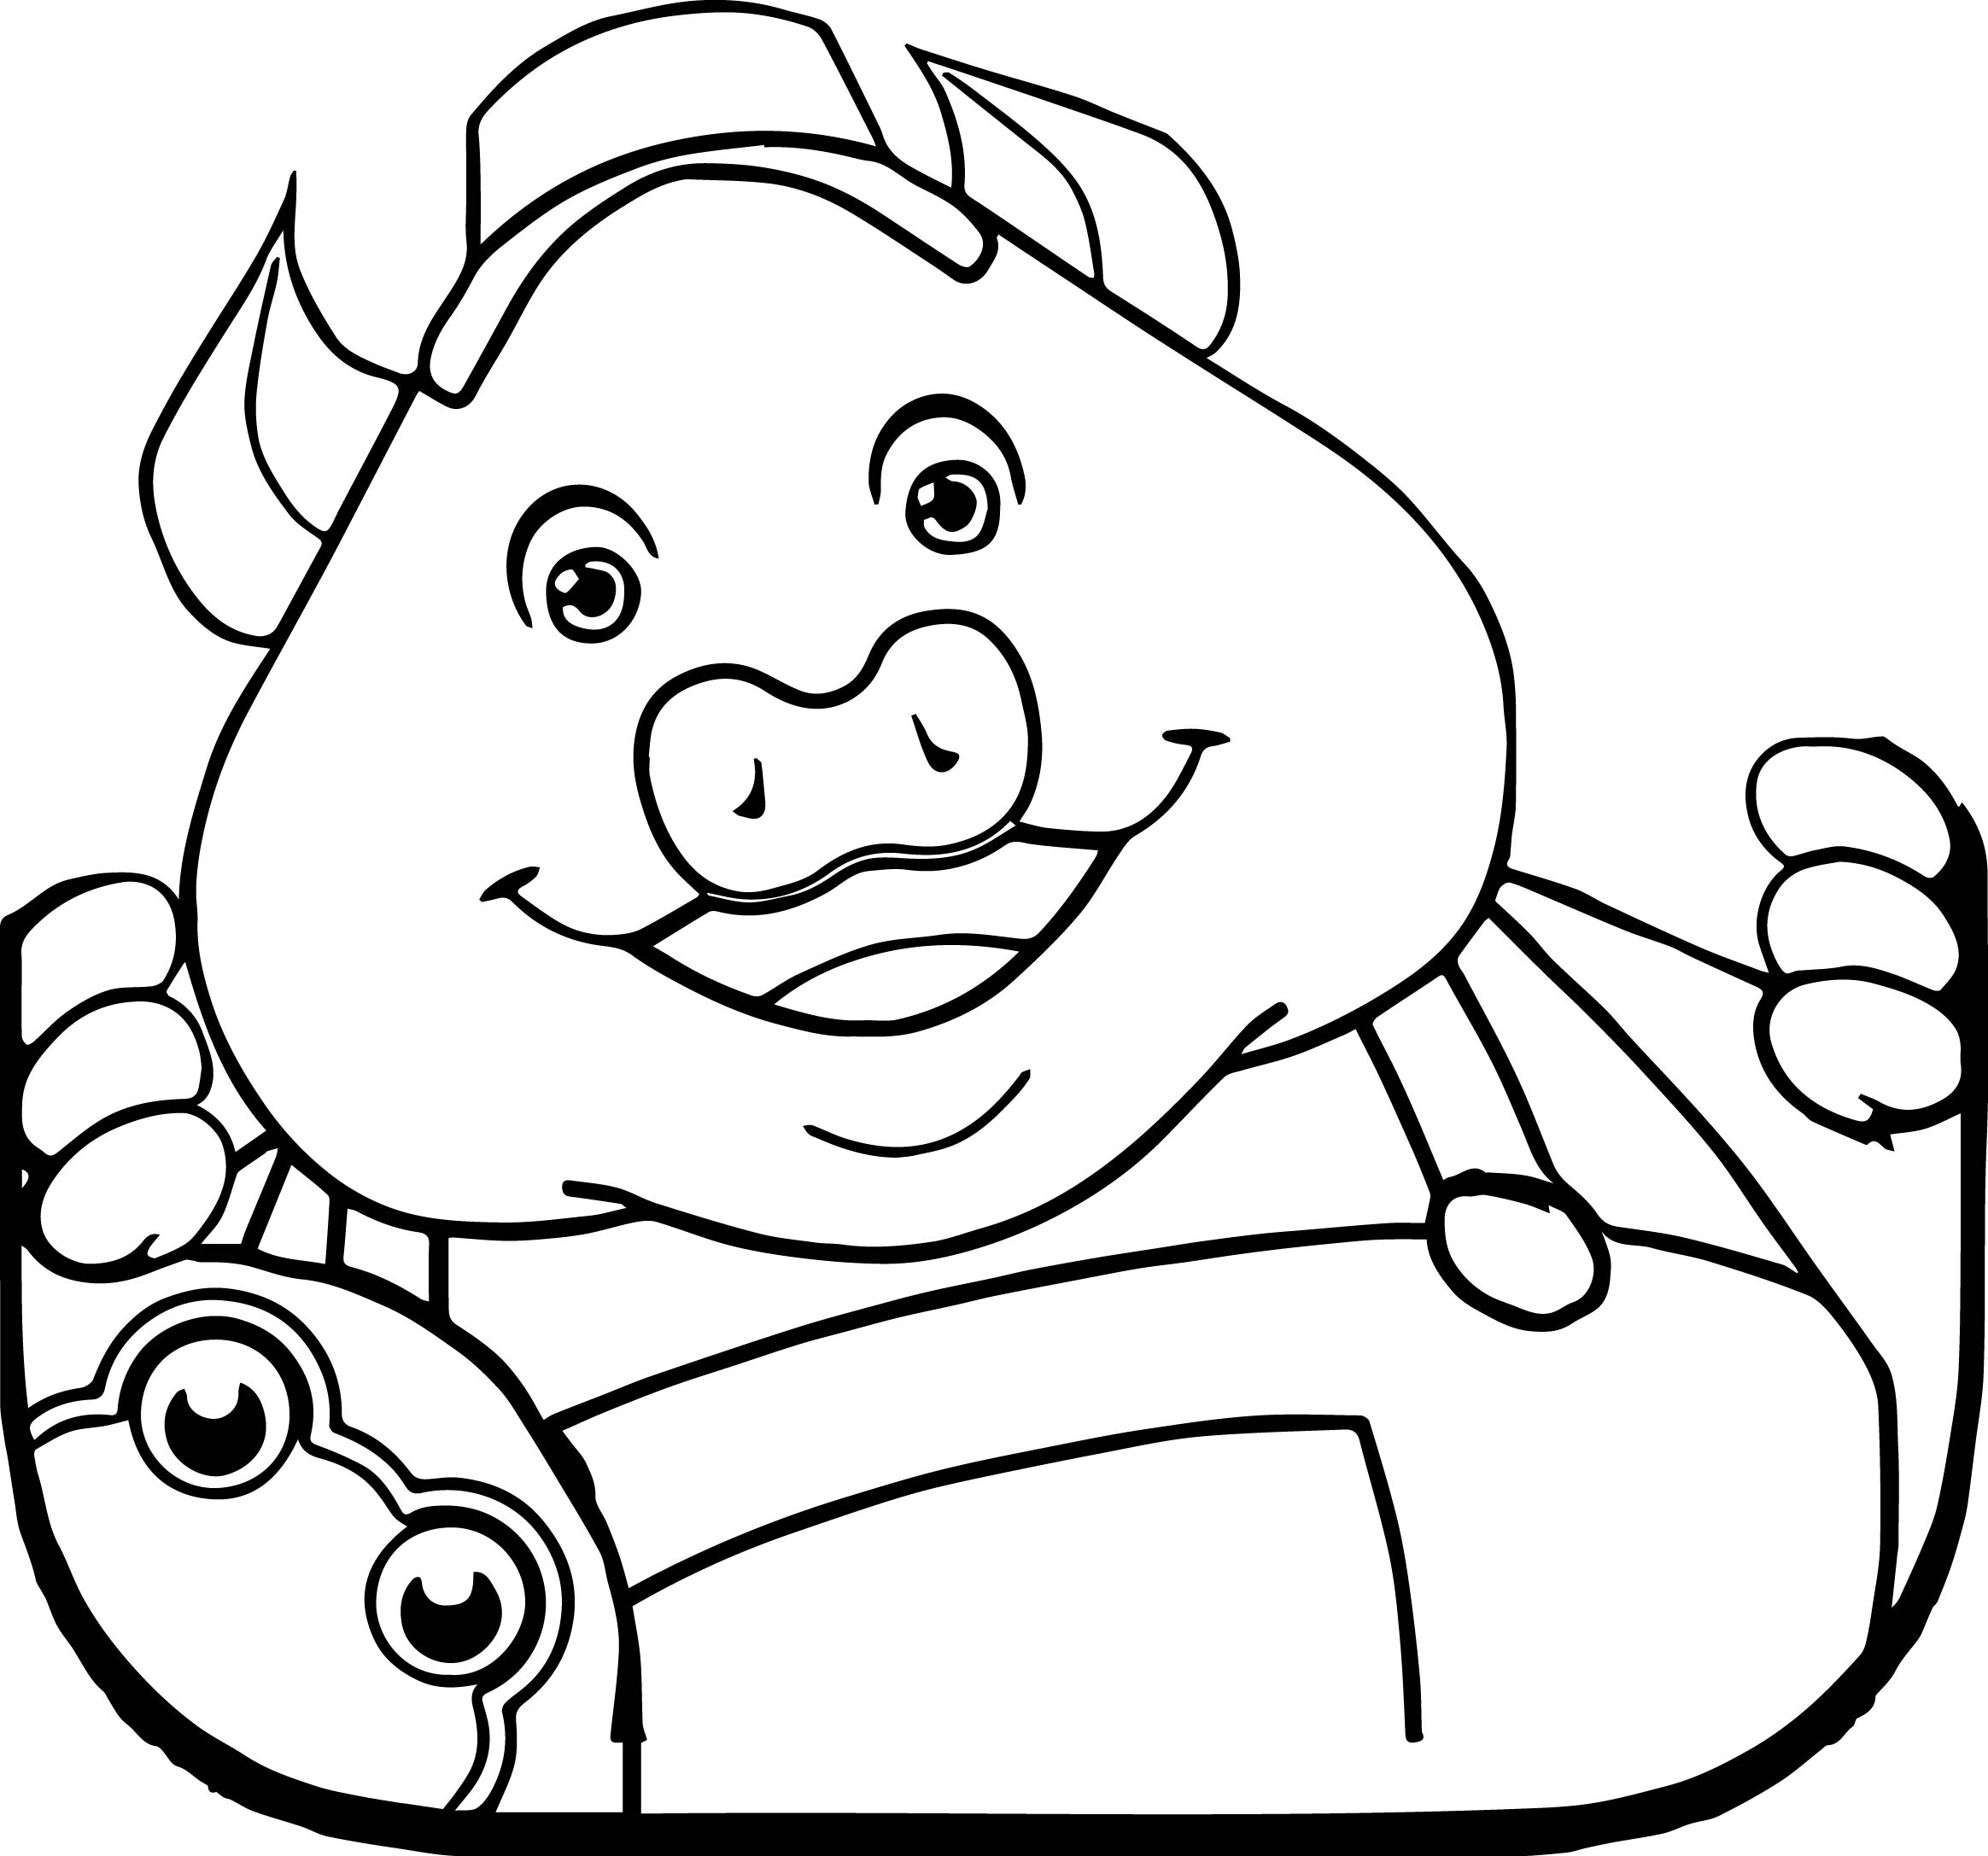 The 3 Little Pigs Storybook Coloring Page